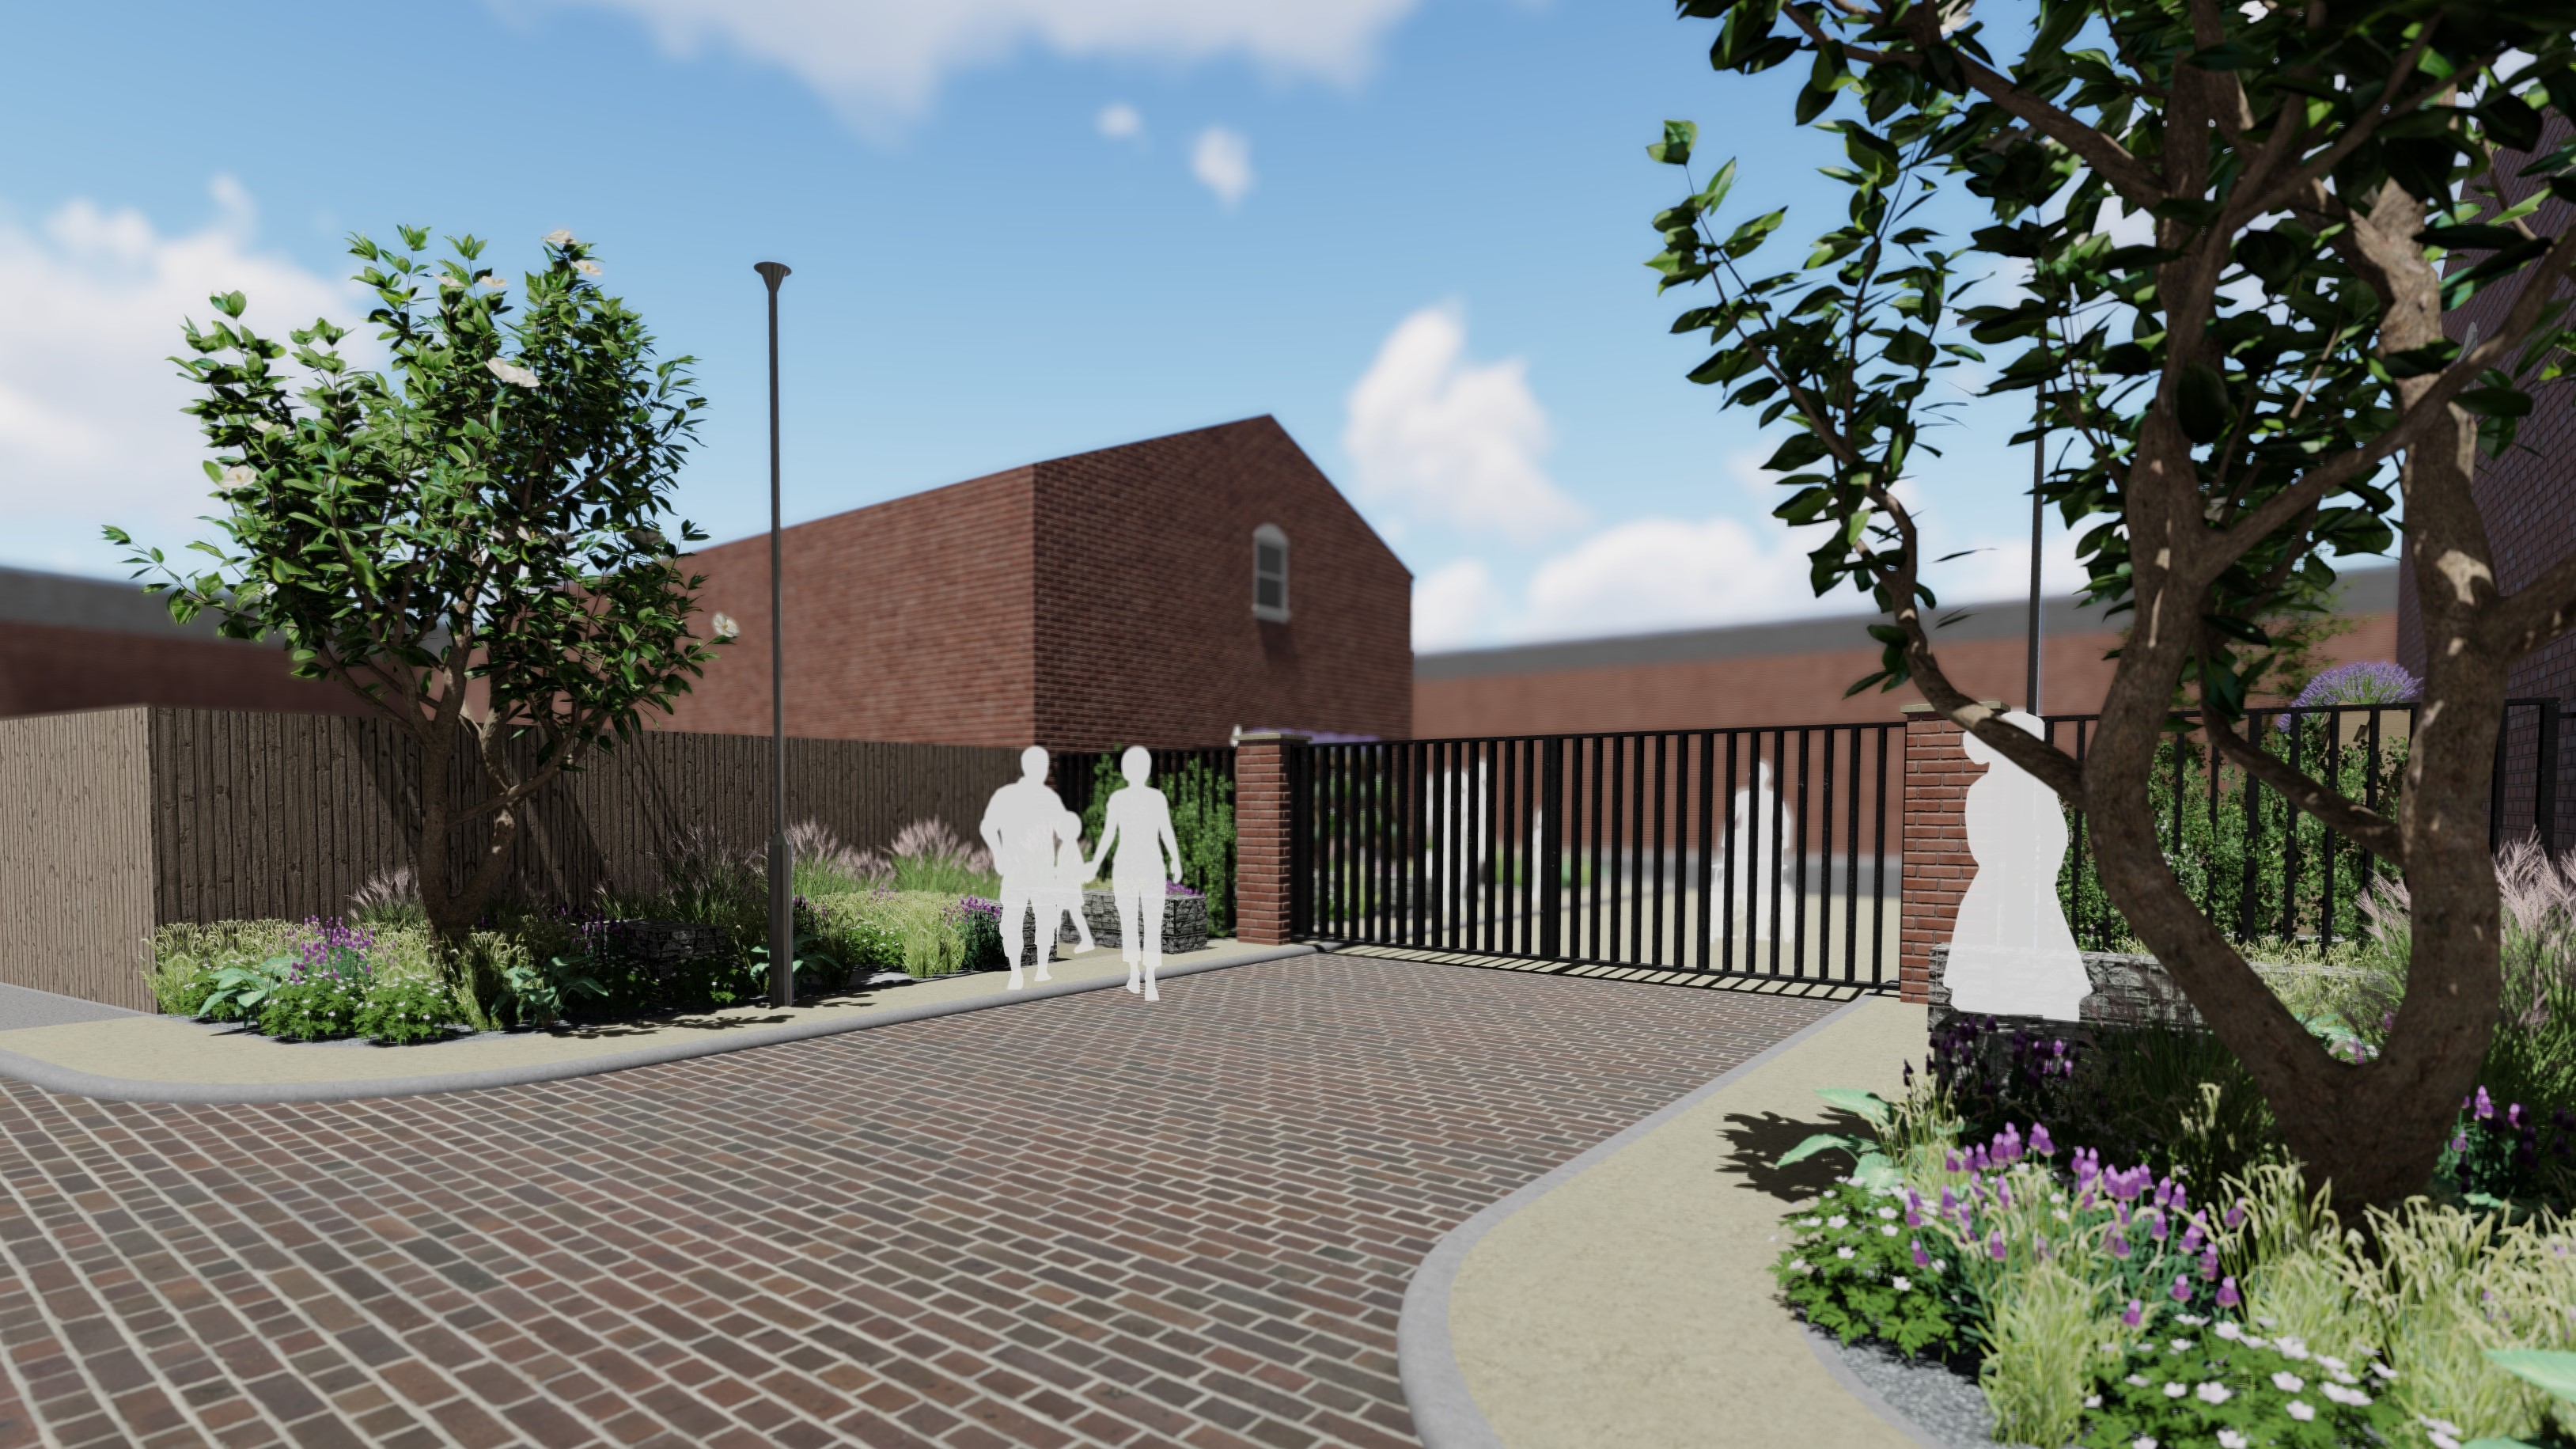 Visualisations of the completed Heron Street Community Garden